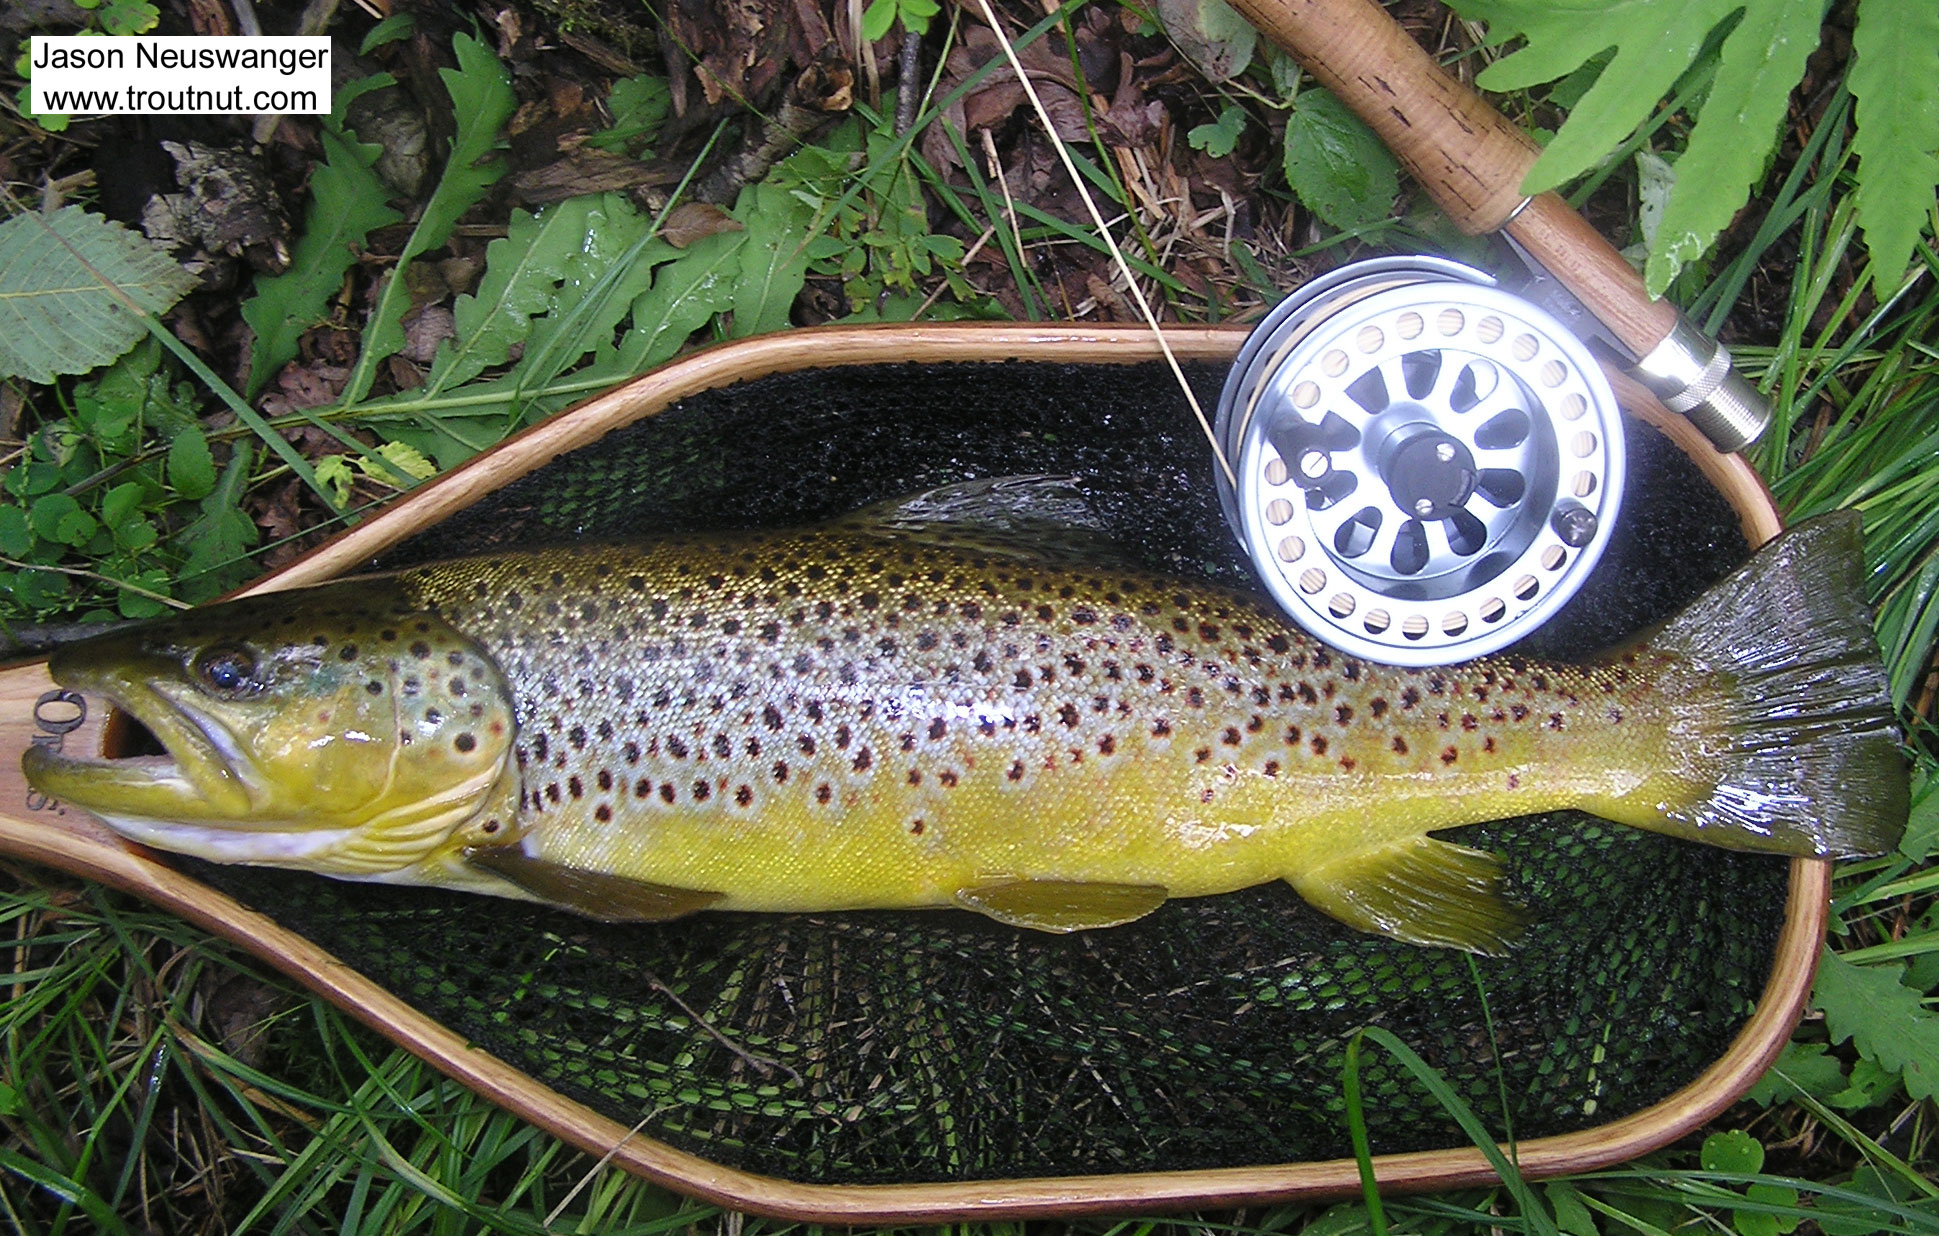 This 18 inch brown took a dry fly during early July Isonychia action. From the Namekagon River in Wisconsin.